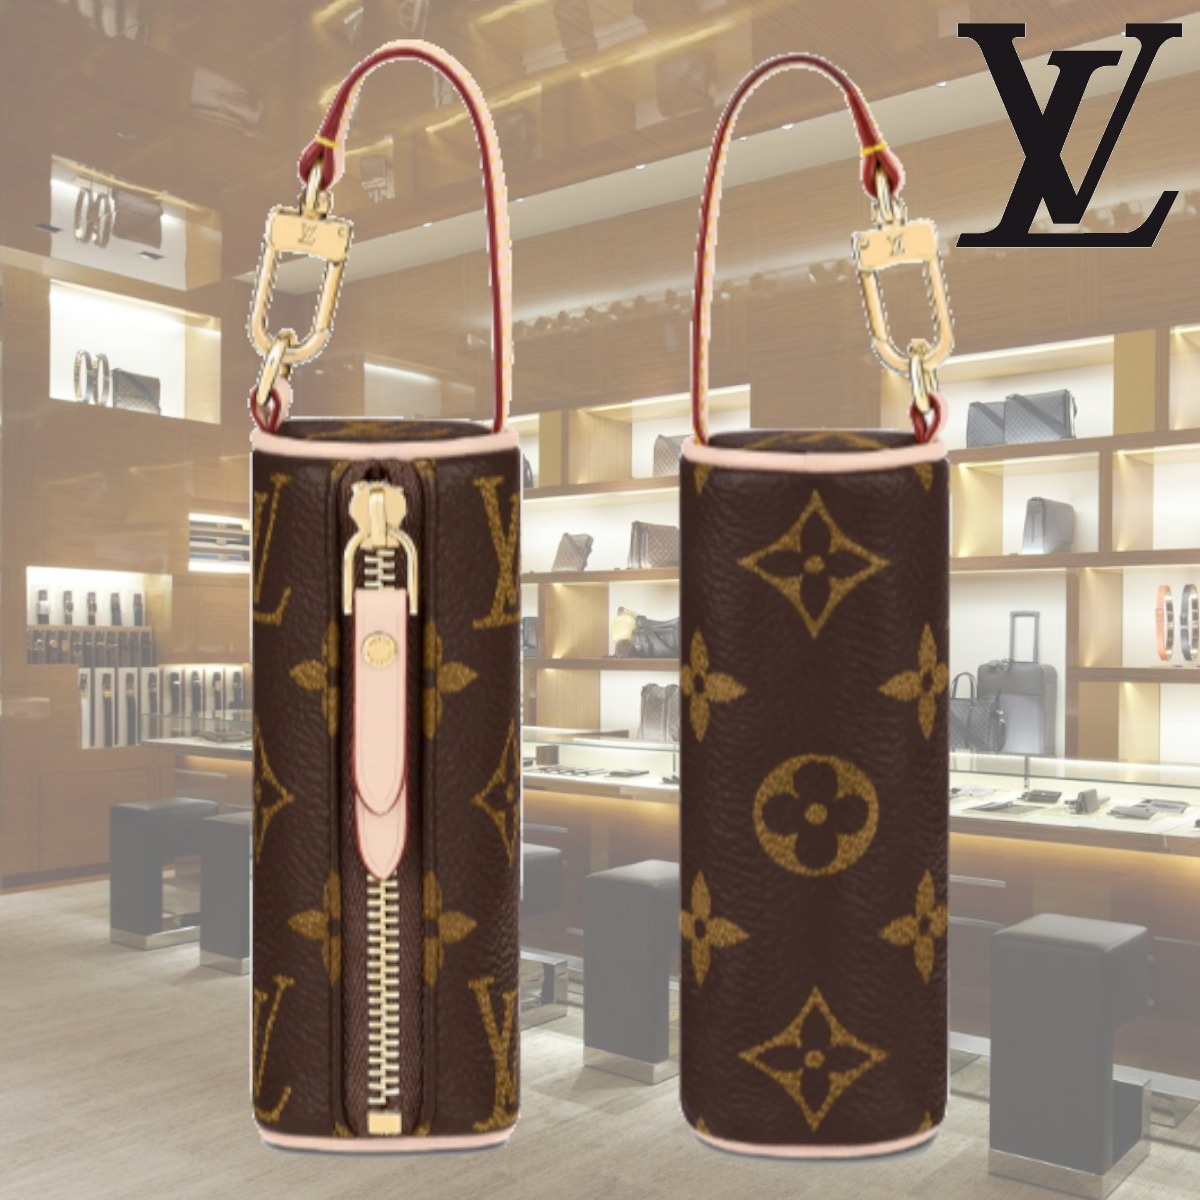 LV マイクロ パピヨン ポーチ バッグチャームに ギフト 国内発 (Louis Vuitton/雑貨・その他) M00354